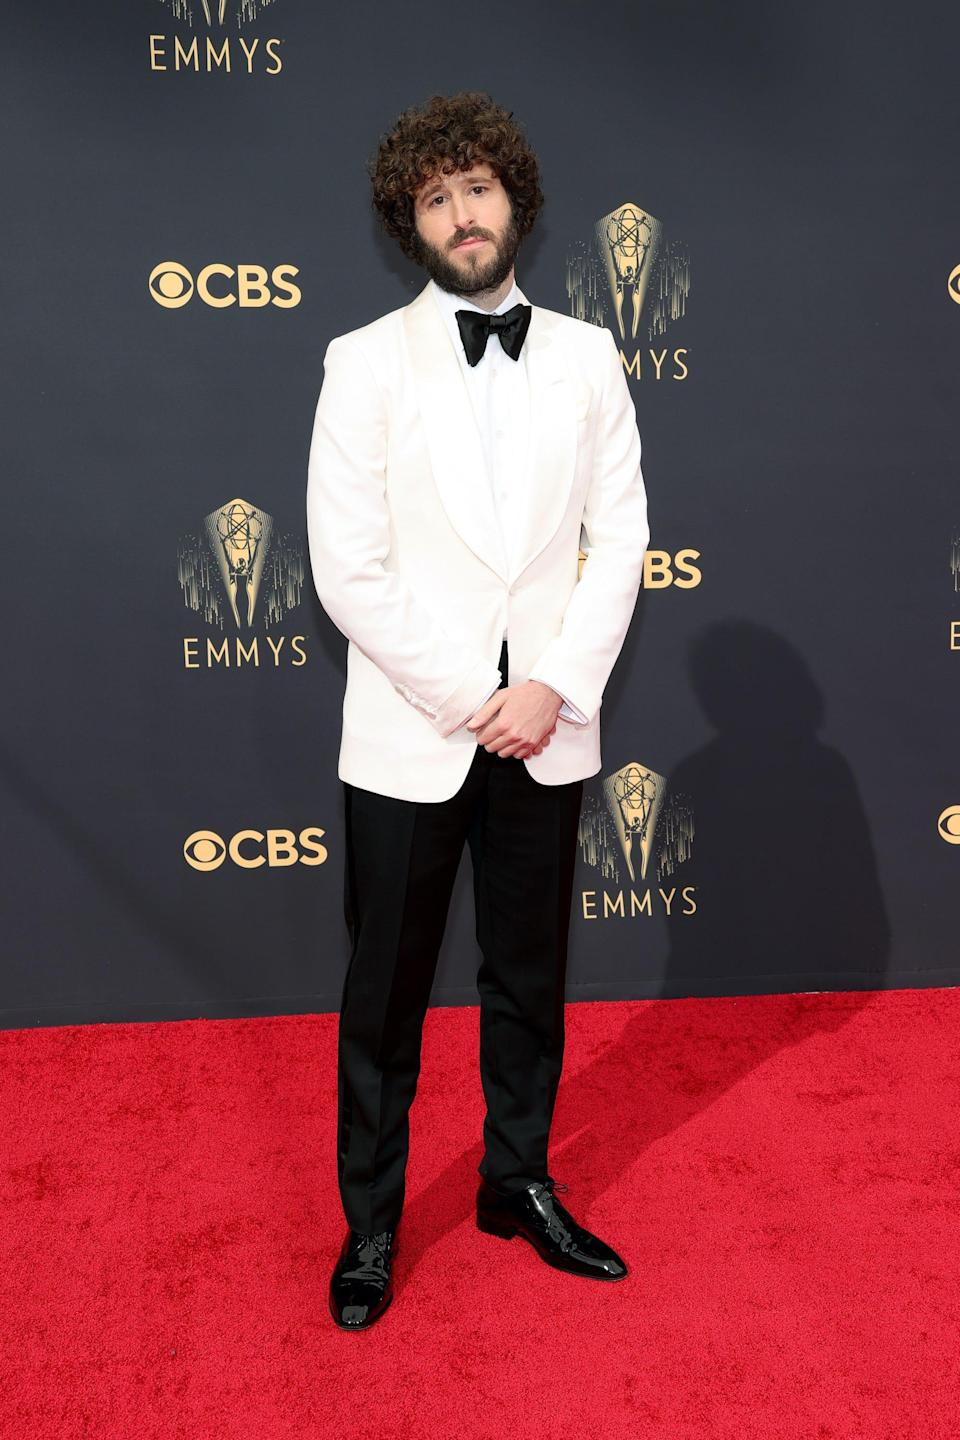 Dave Burd wears a white tuxedo jacket and black pants on the Emmys red carpet.